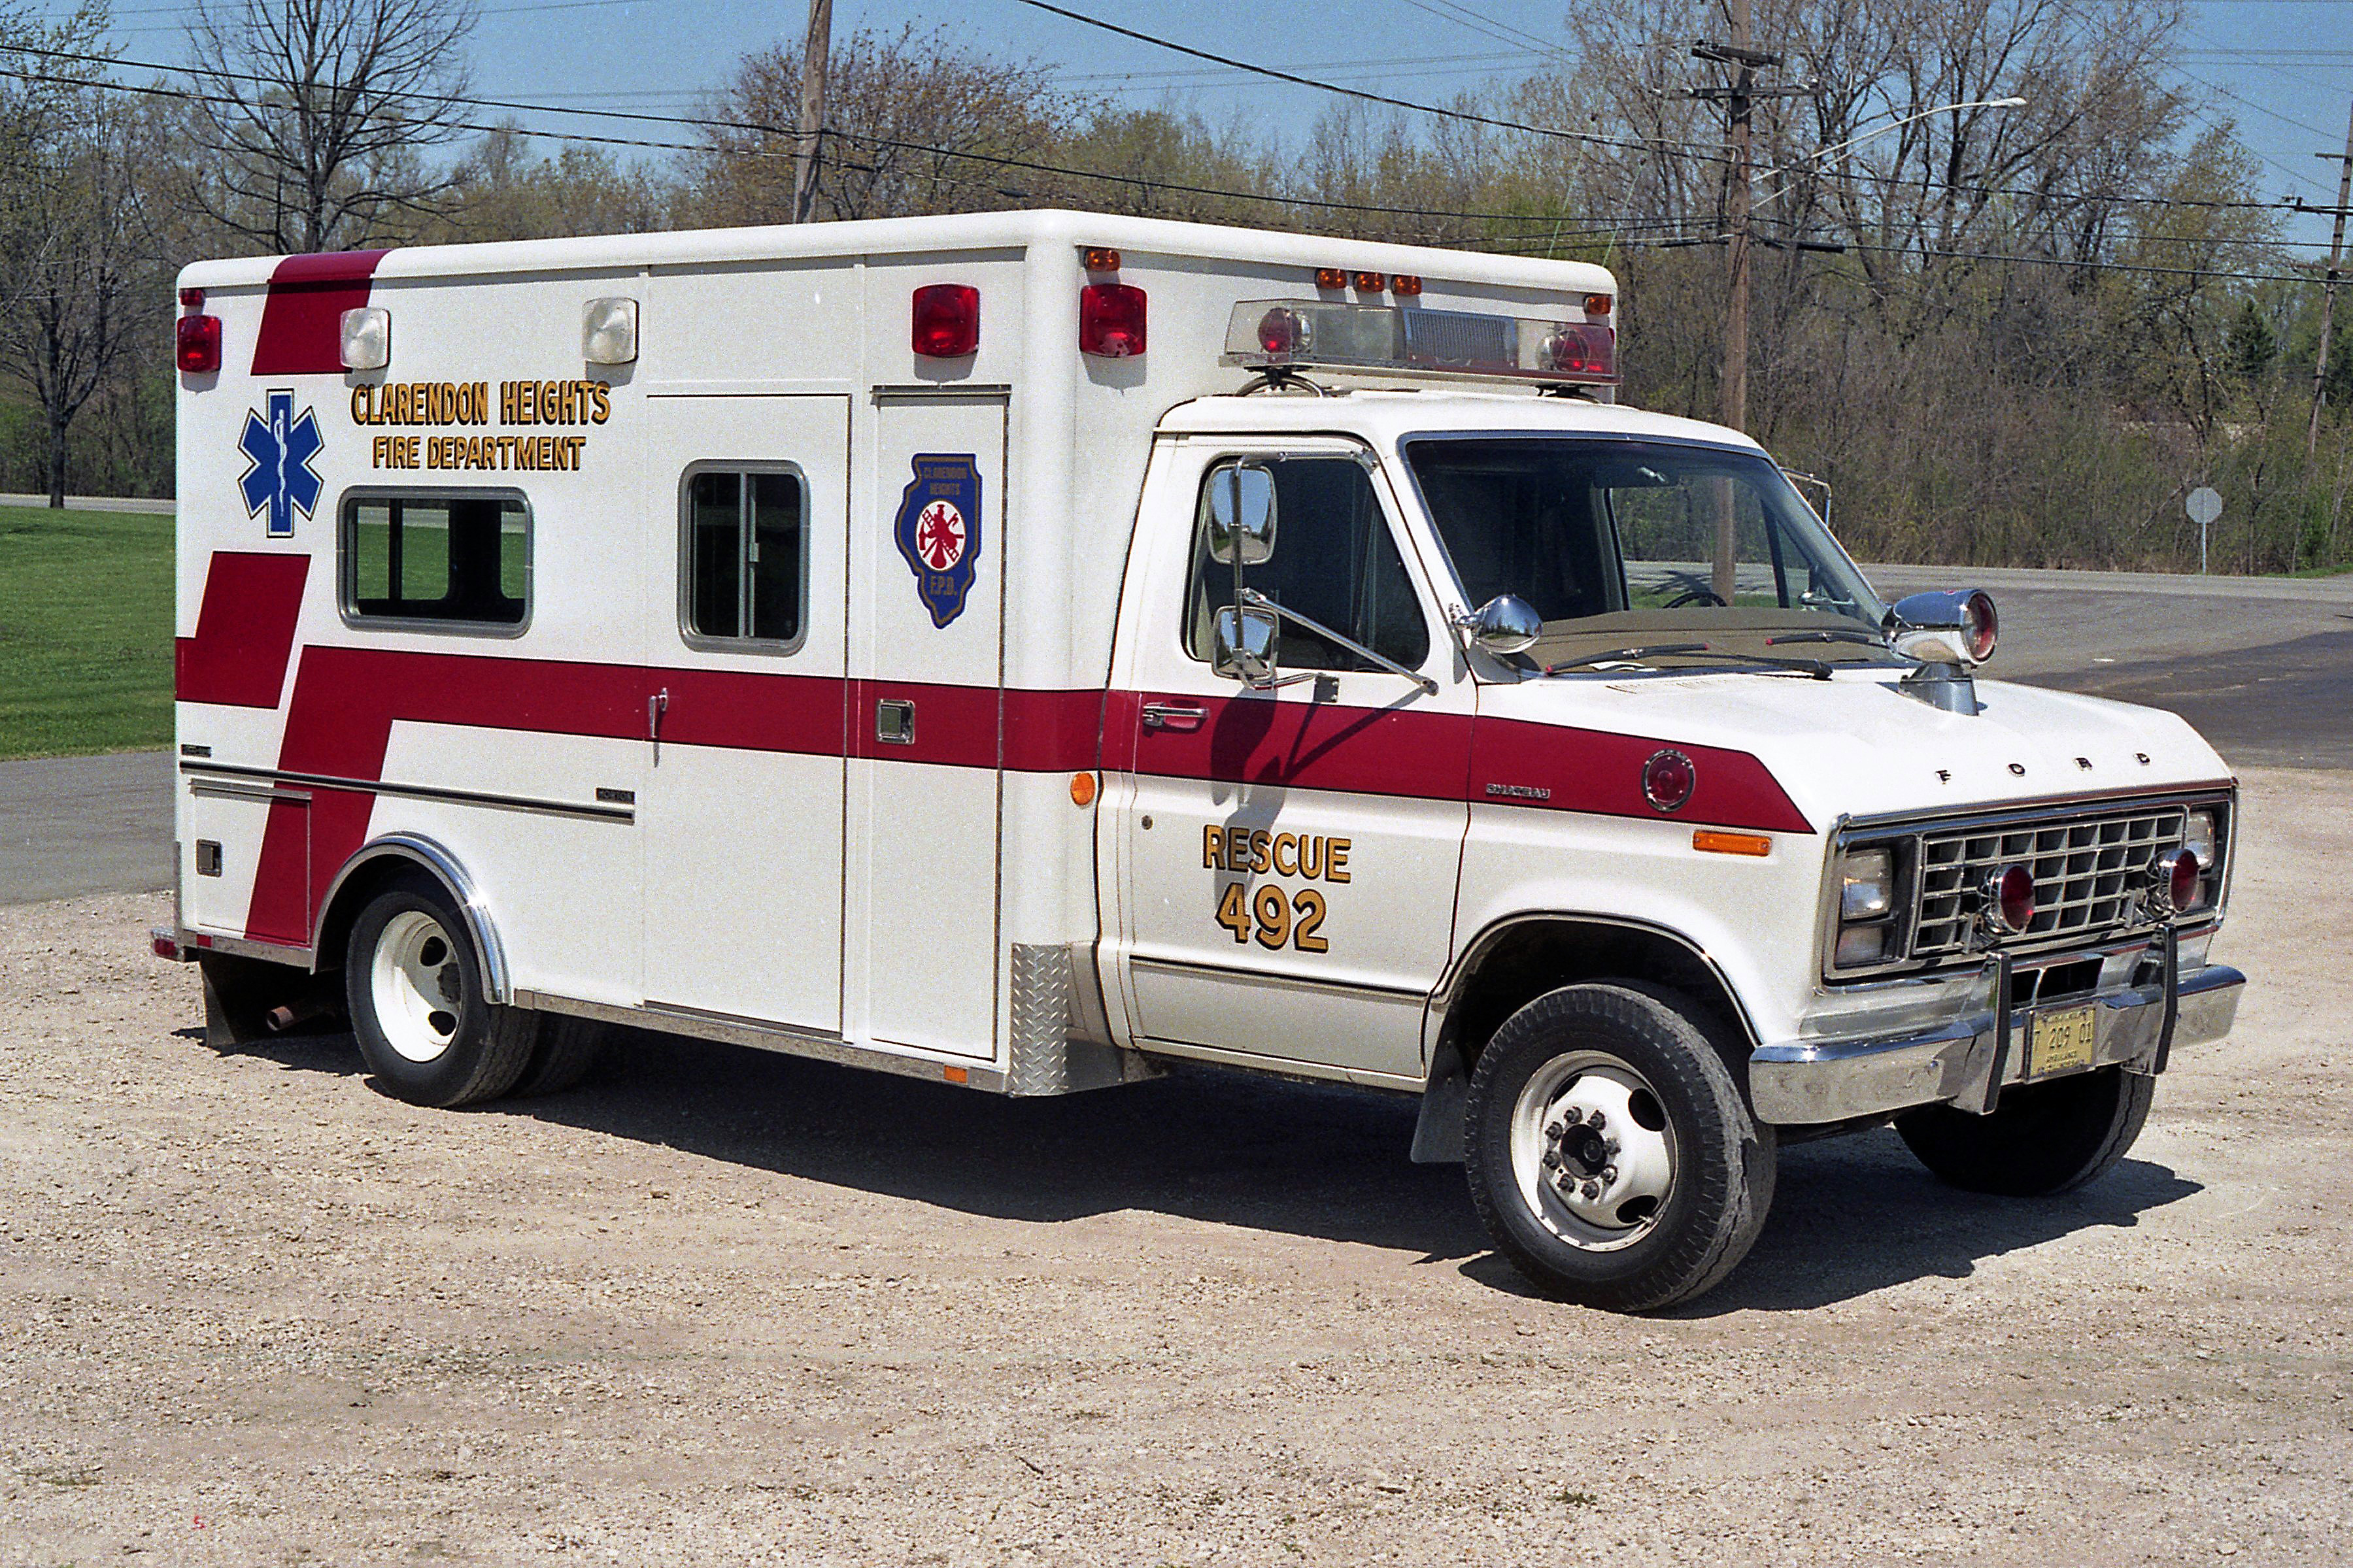 CLARENDON HEIGHTS AMBULANCE 492 1981 FORD E350 - HORTON PASSENGER SIDE